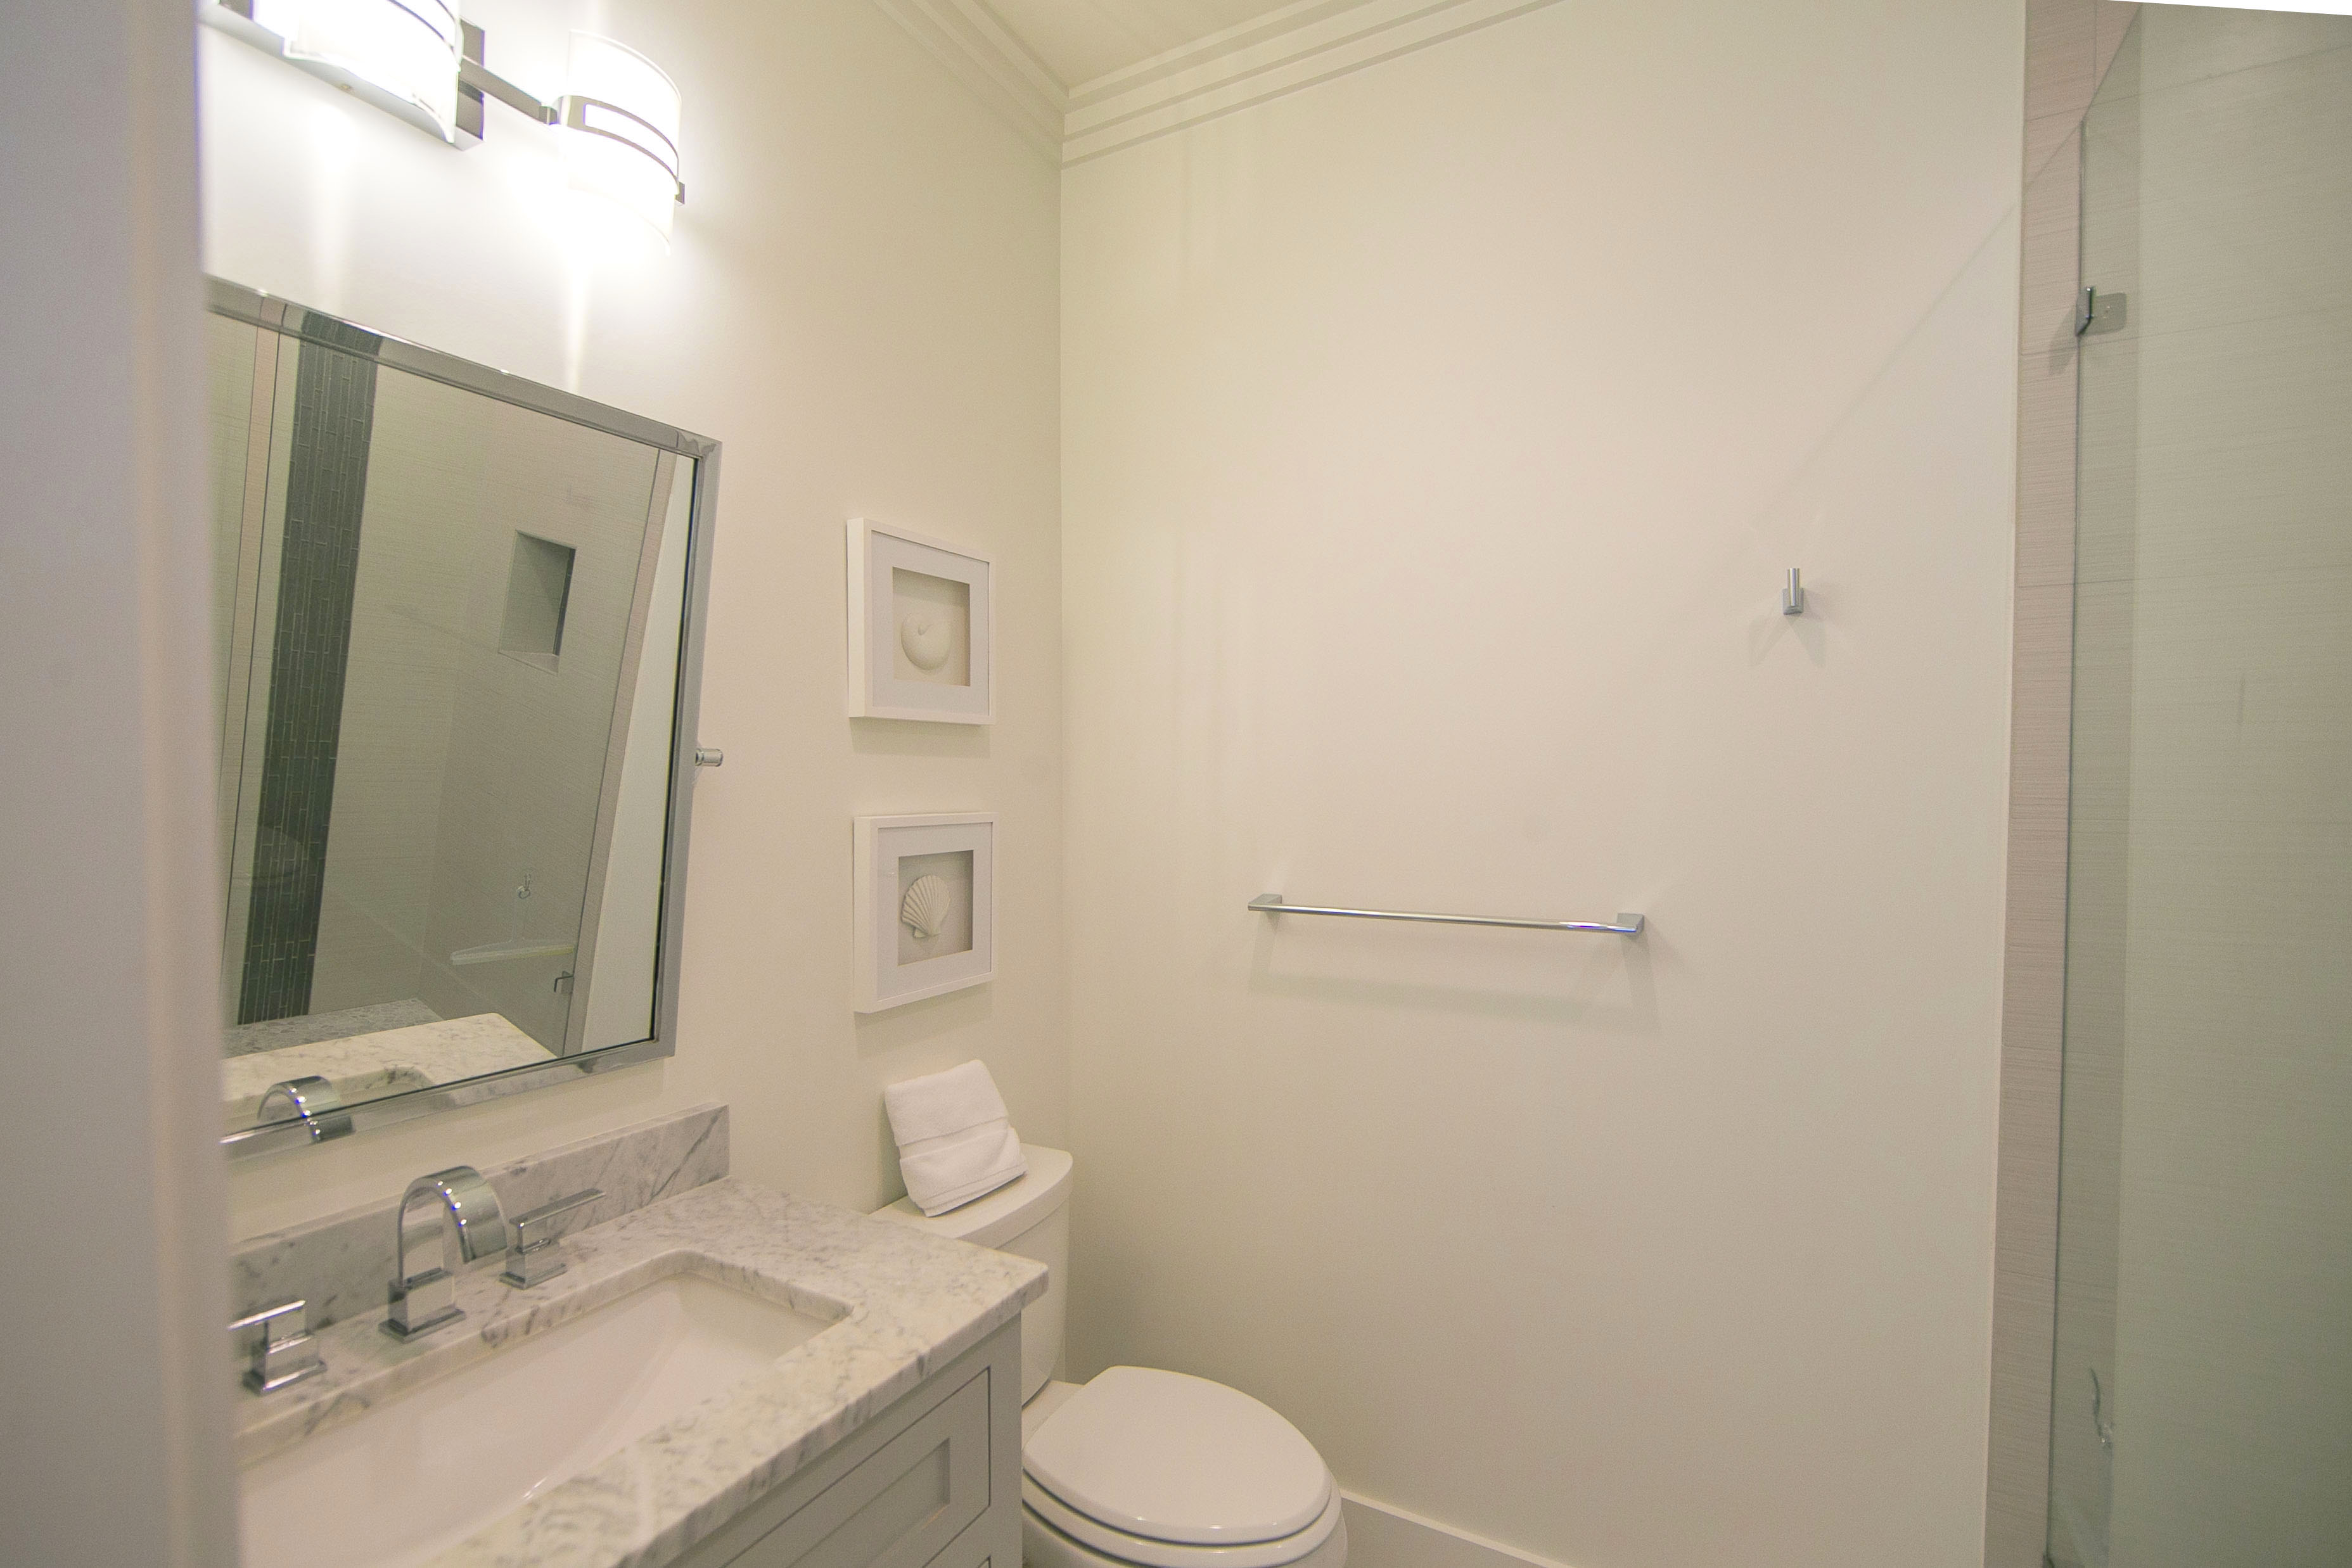 2nd floor king bedroom ensuite bath with a marble vanity and a shower.